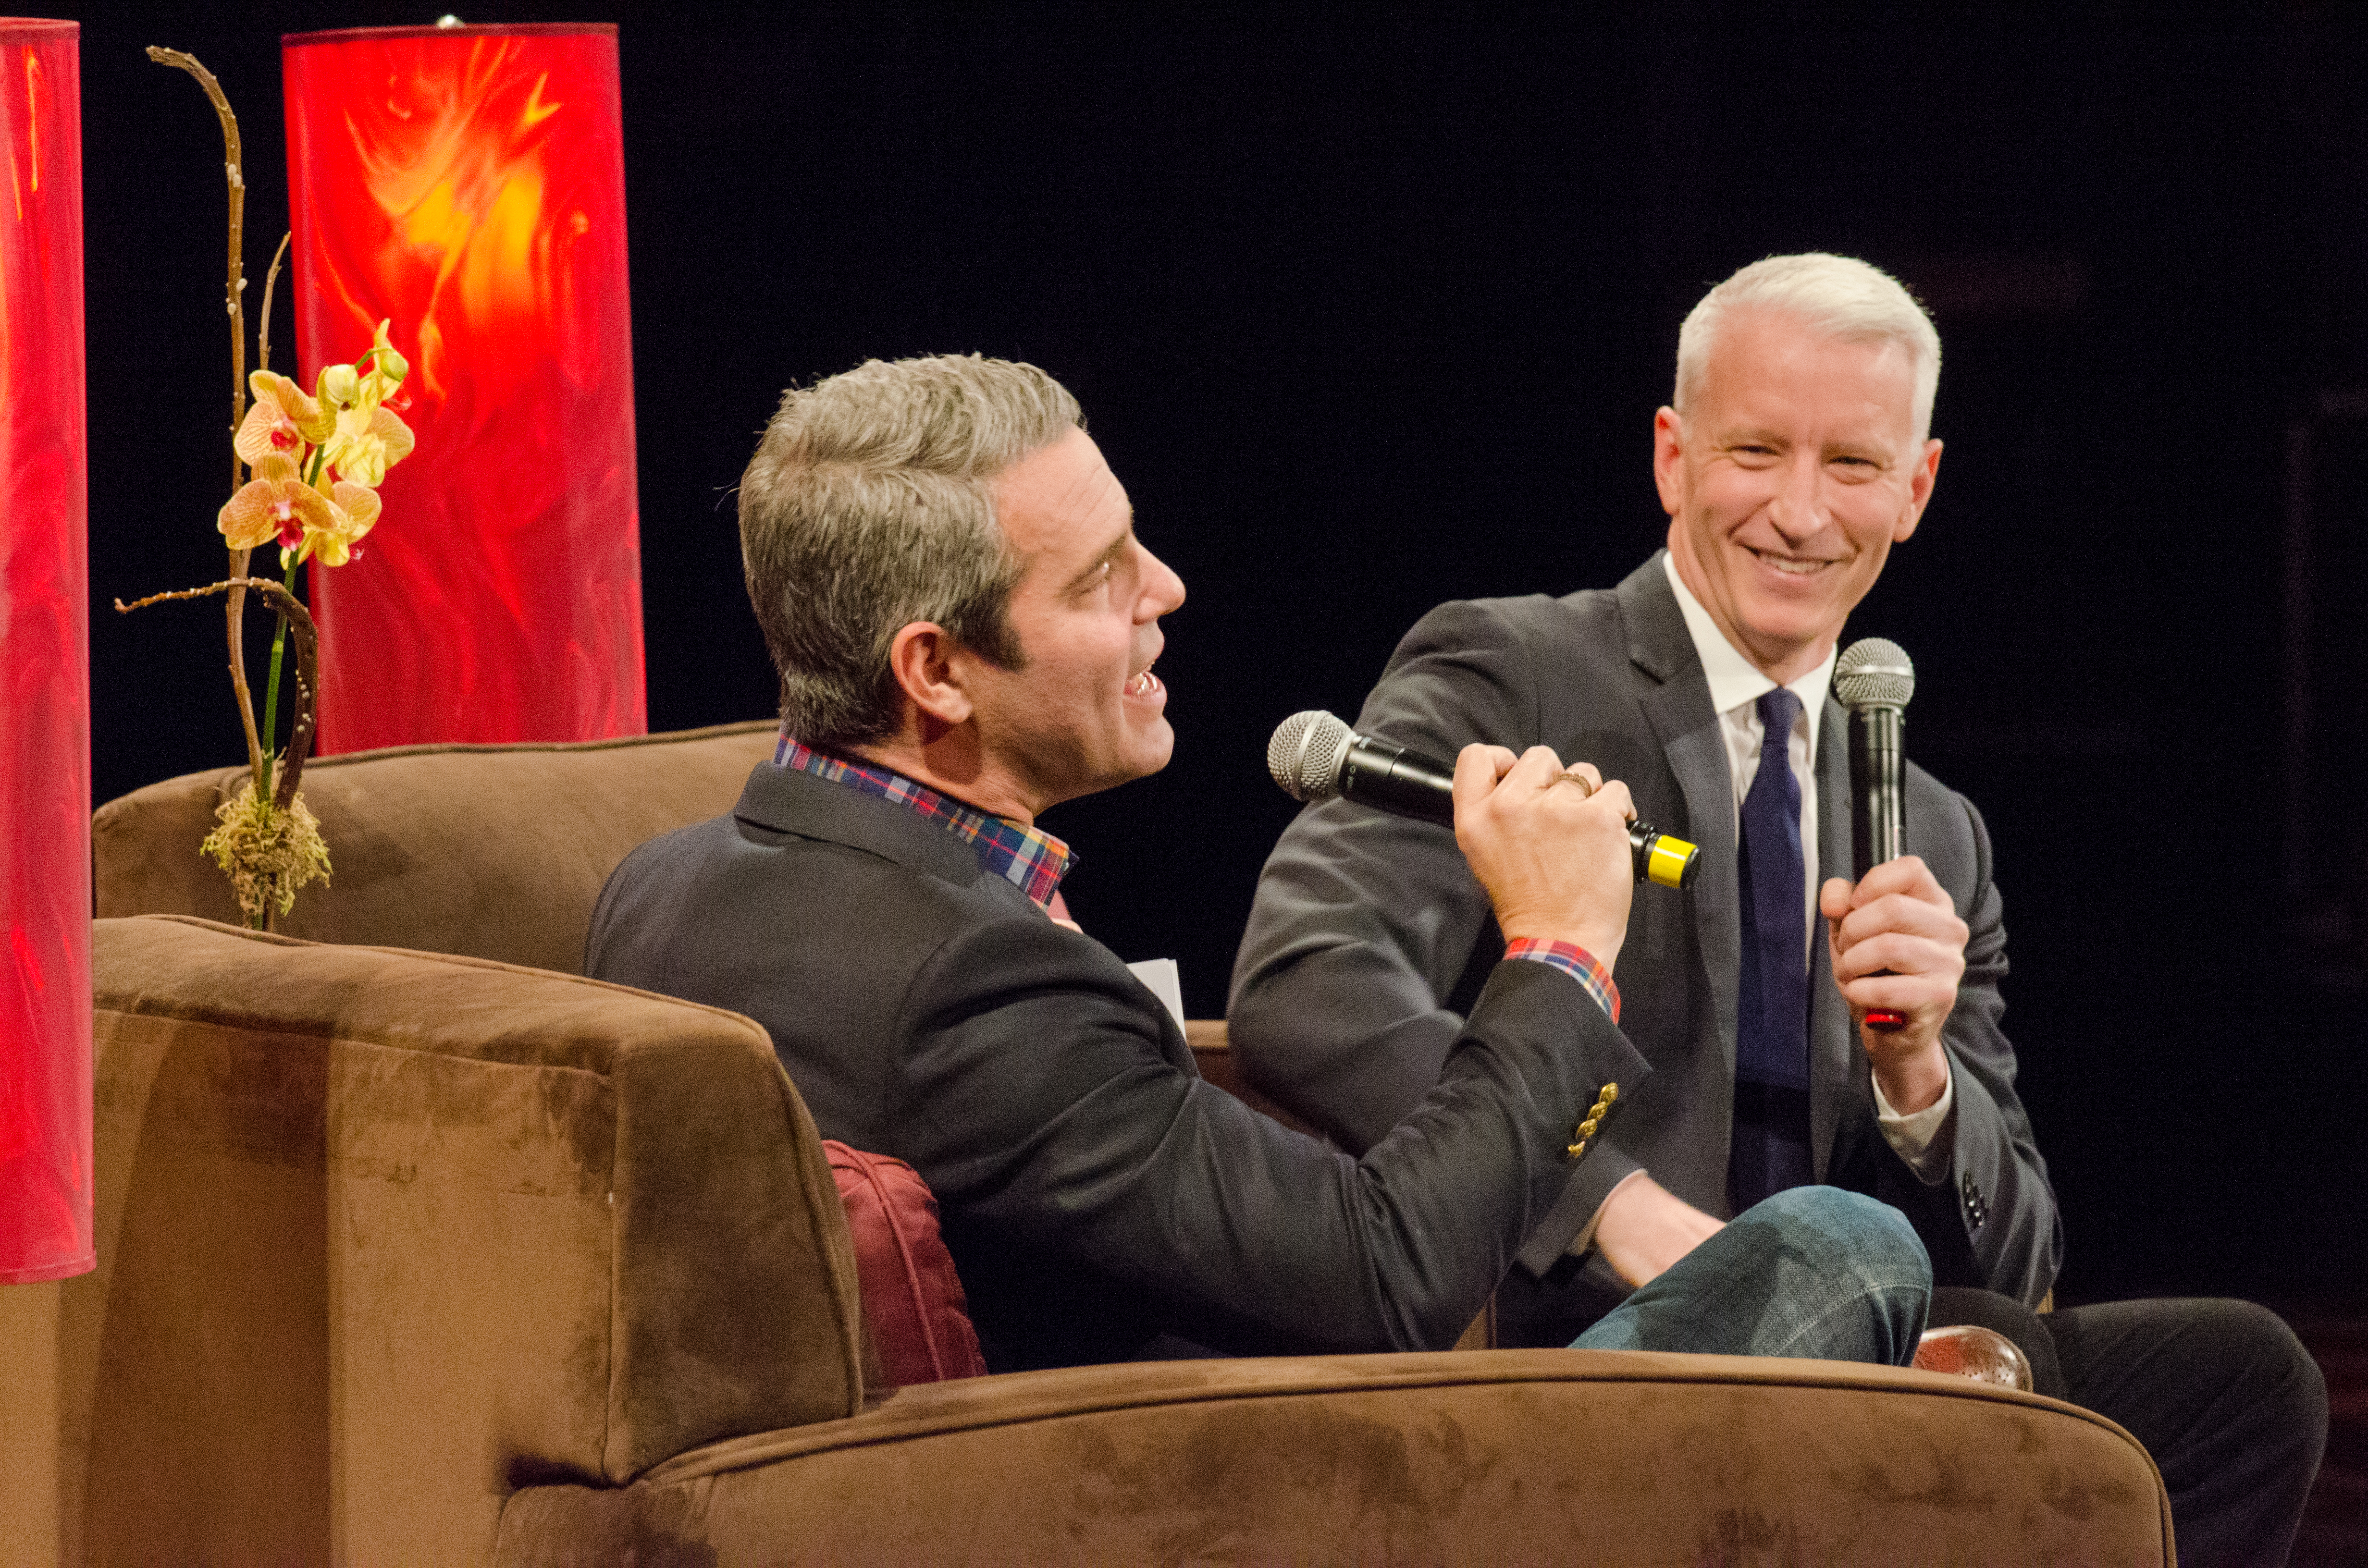 News and reality TV collide as Anderson Cooper & Andy Cohen hit Warner Theatre